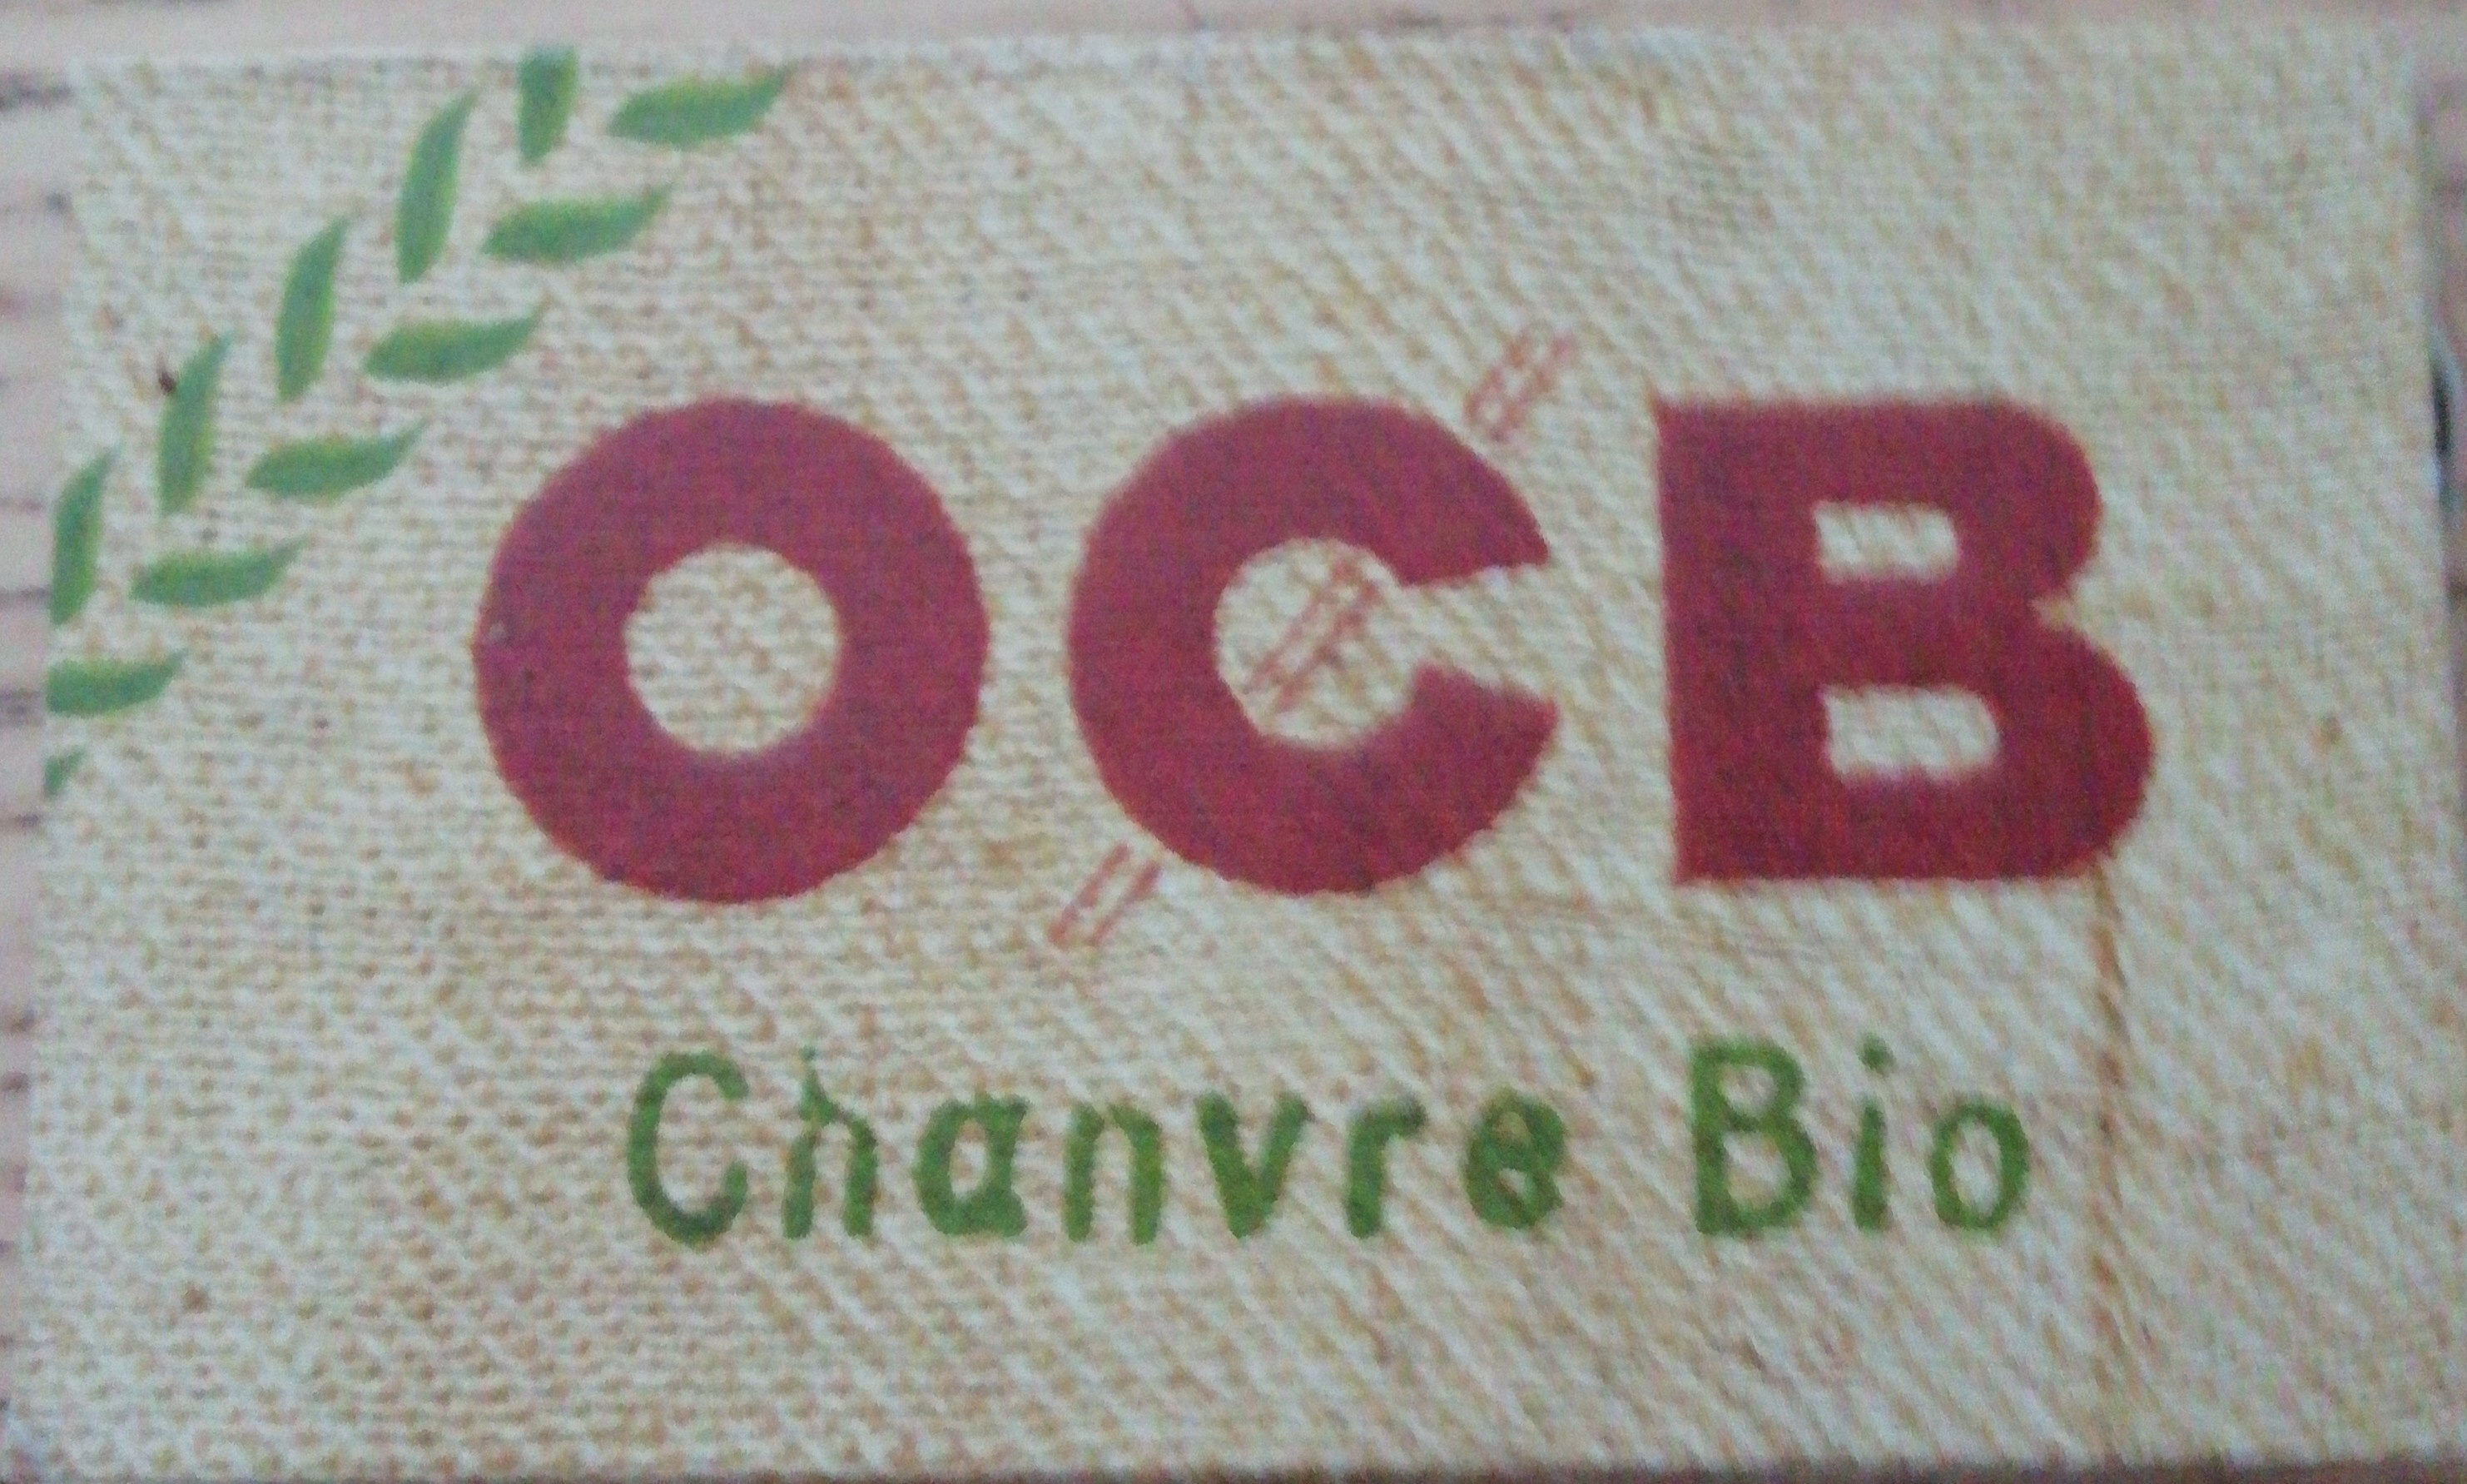 OCB Chanvre bio - Product - fr